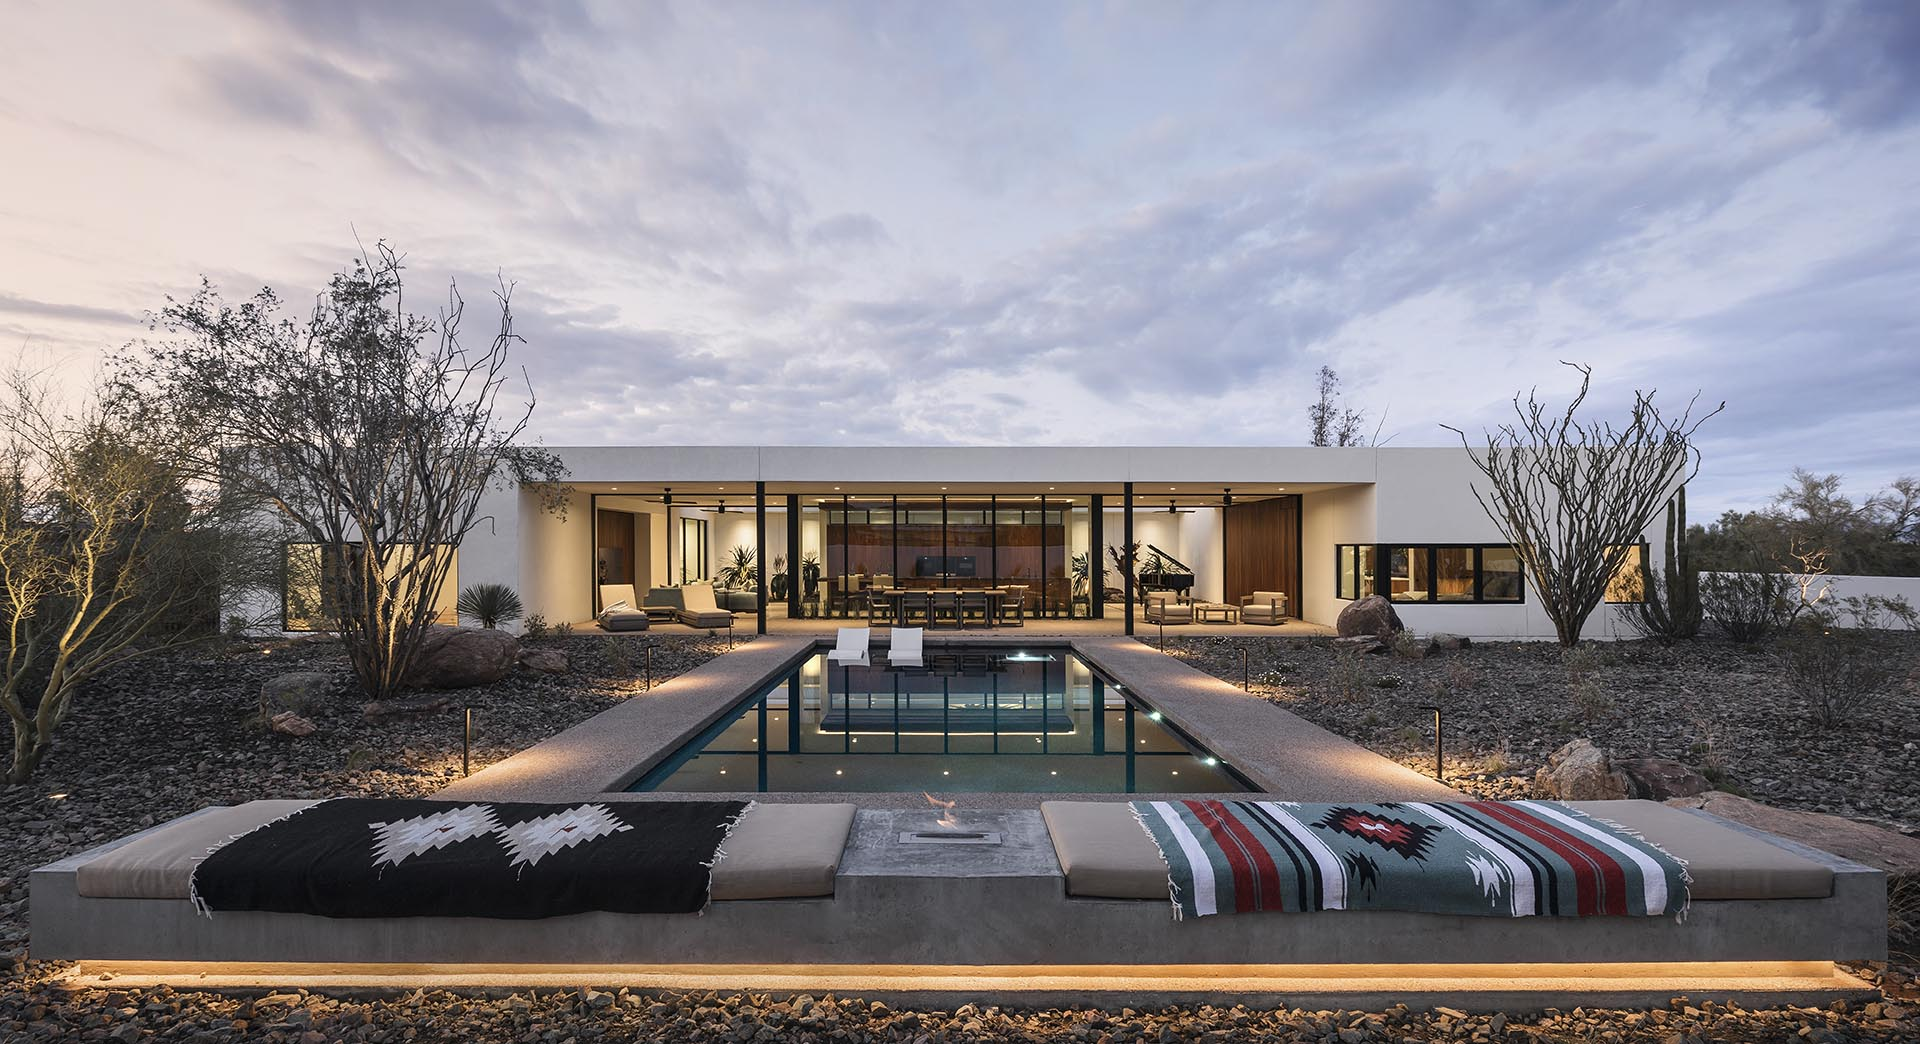 This Modern House Was Designed To Integrate The Desert Flora And Fauna